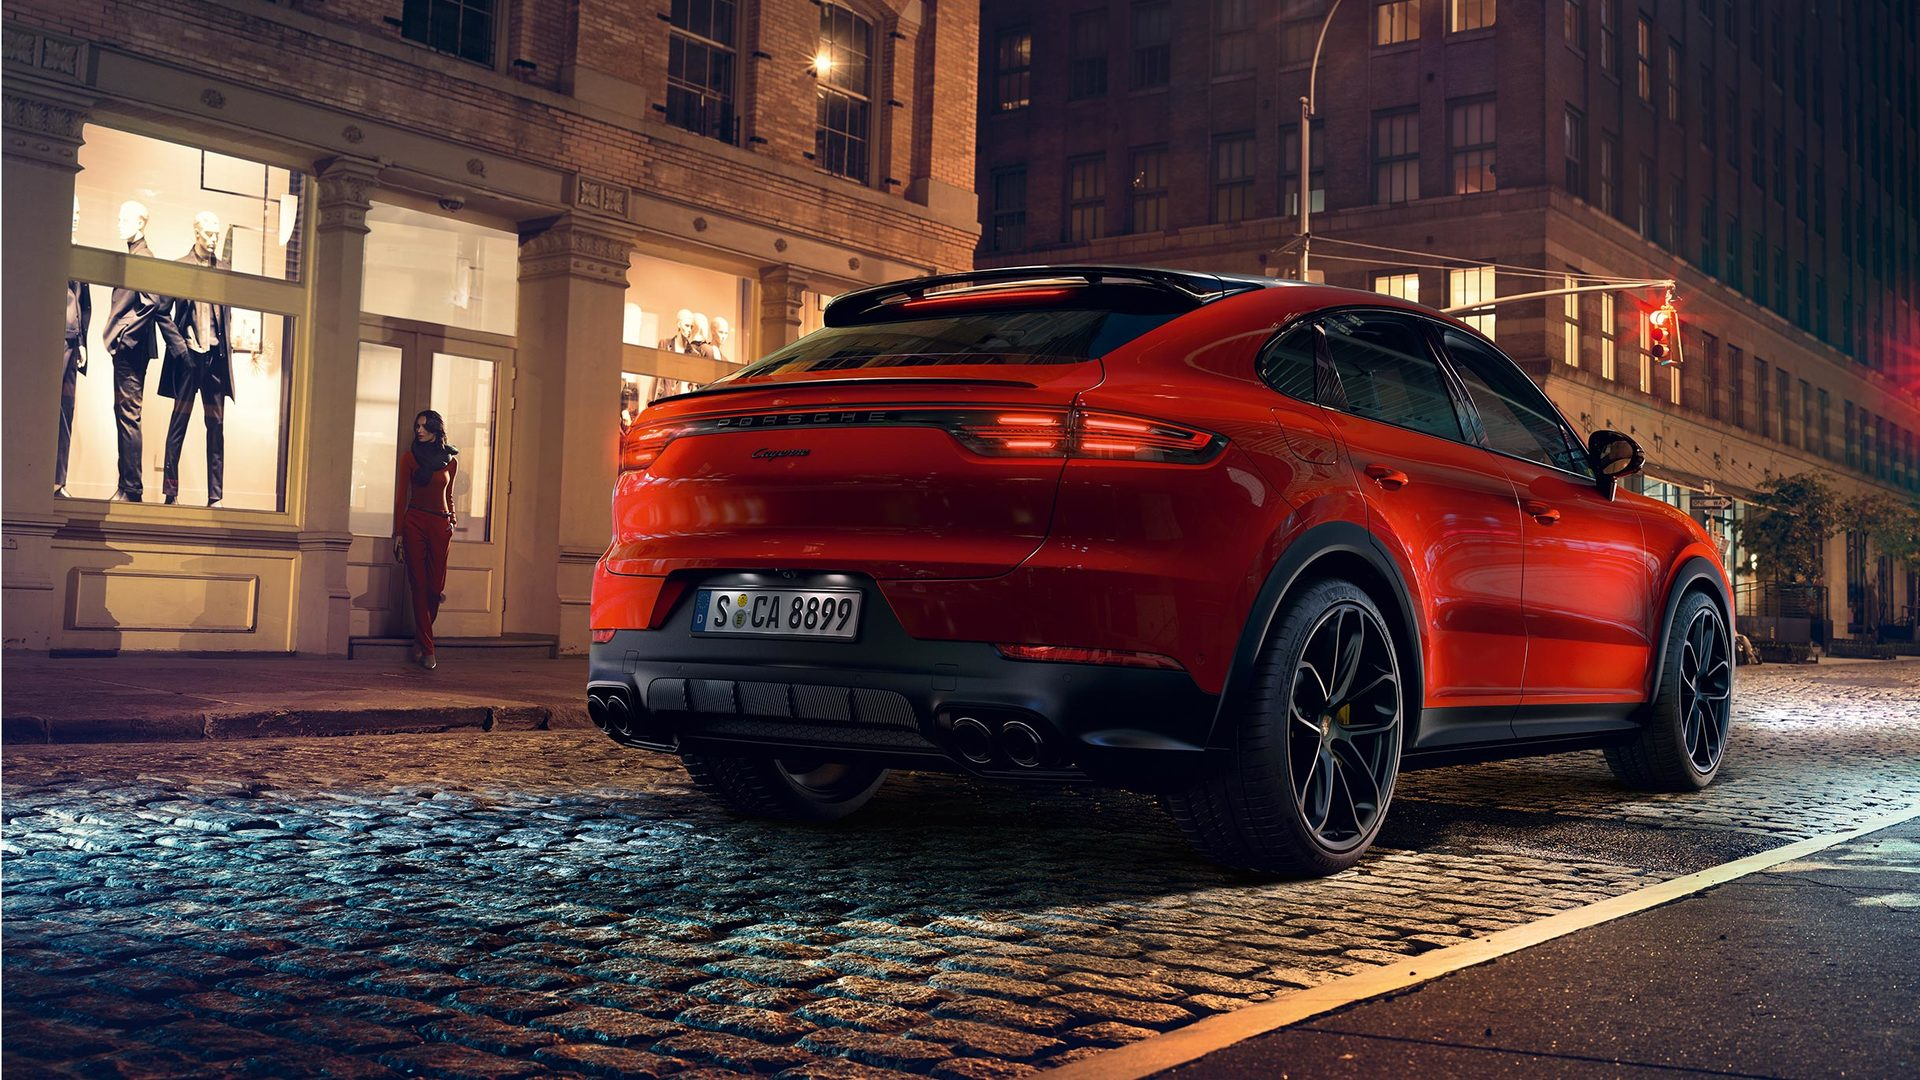 Mercedes Benz Coupe >> New Porsche Cayenne Coupe Brings Sexy Back - autoevolution